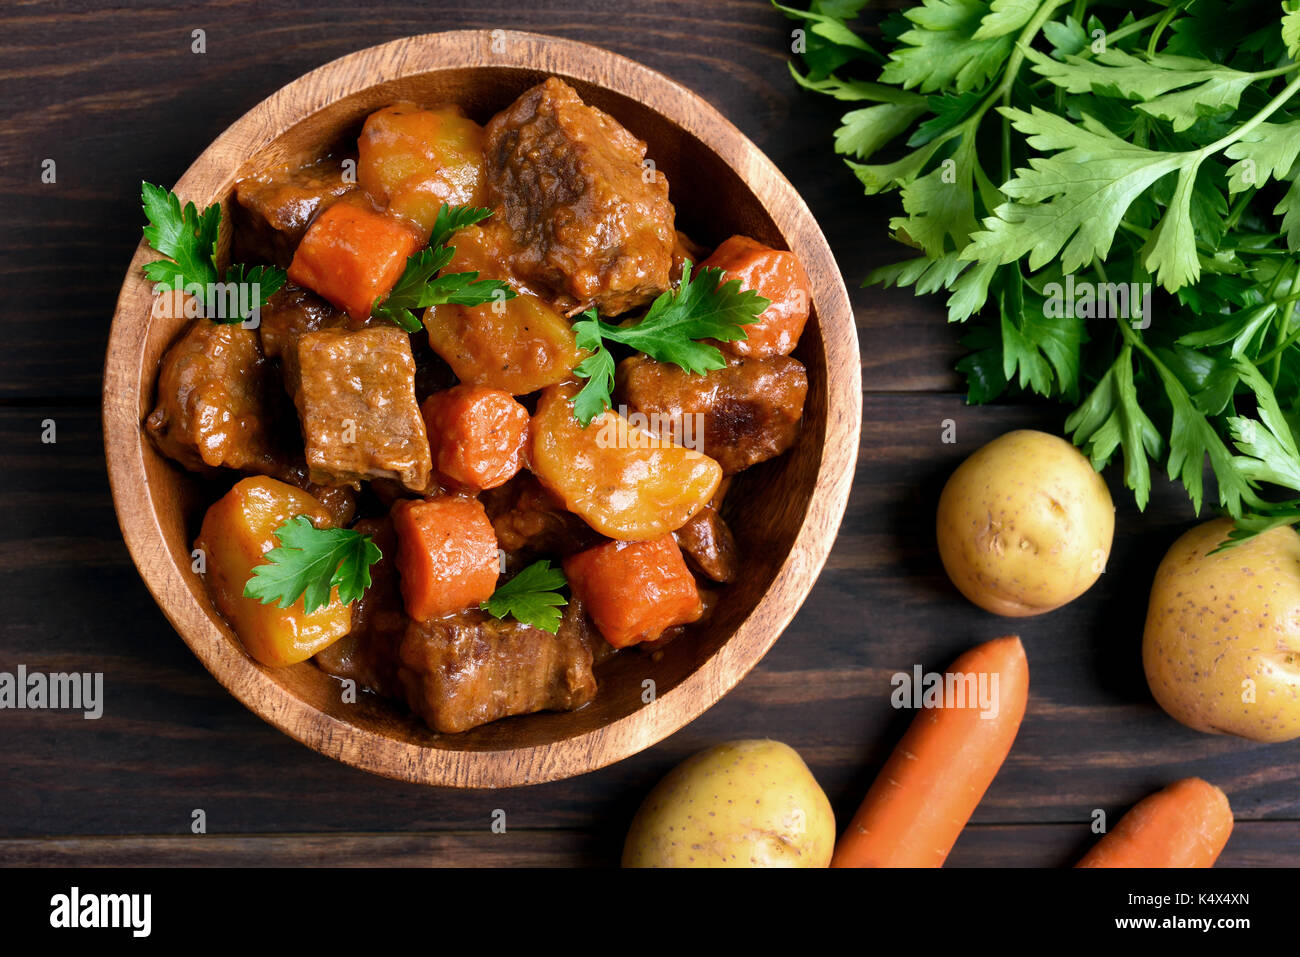 Meat stew with vegetables in bowl on wooden background, top view - Stock Image